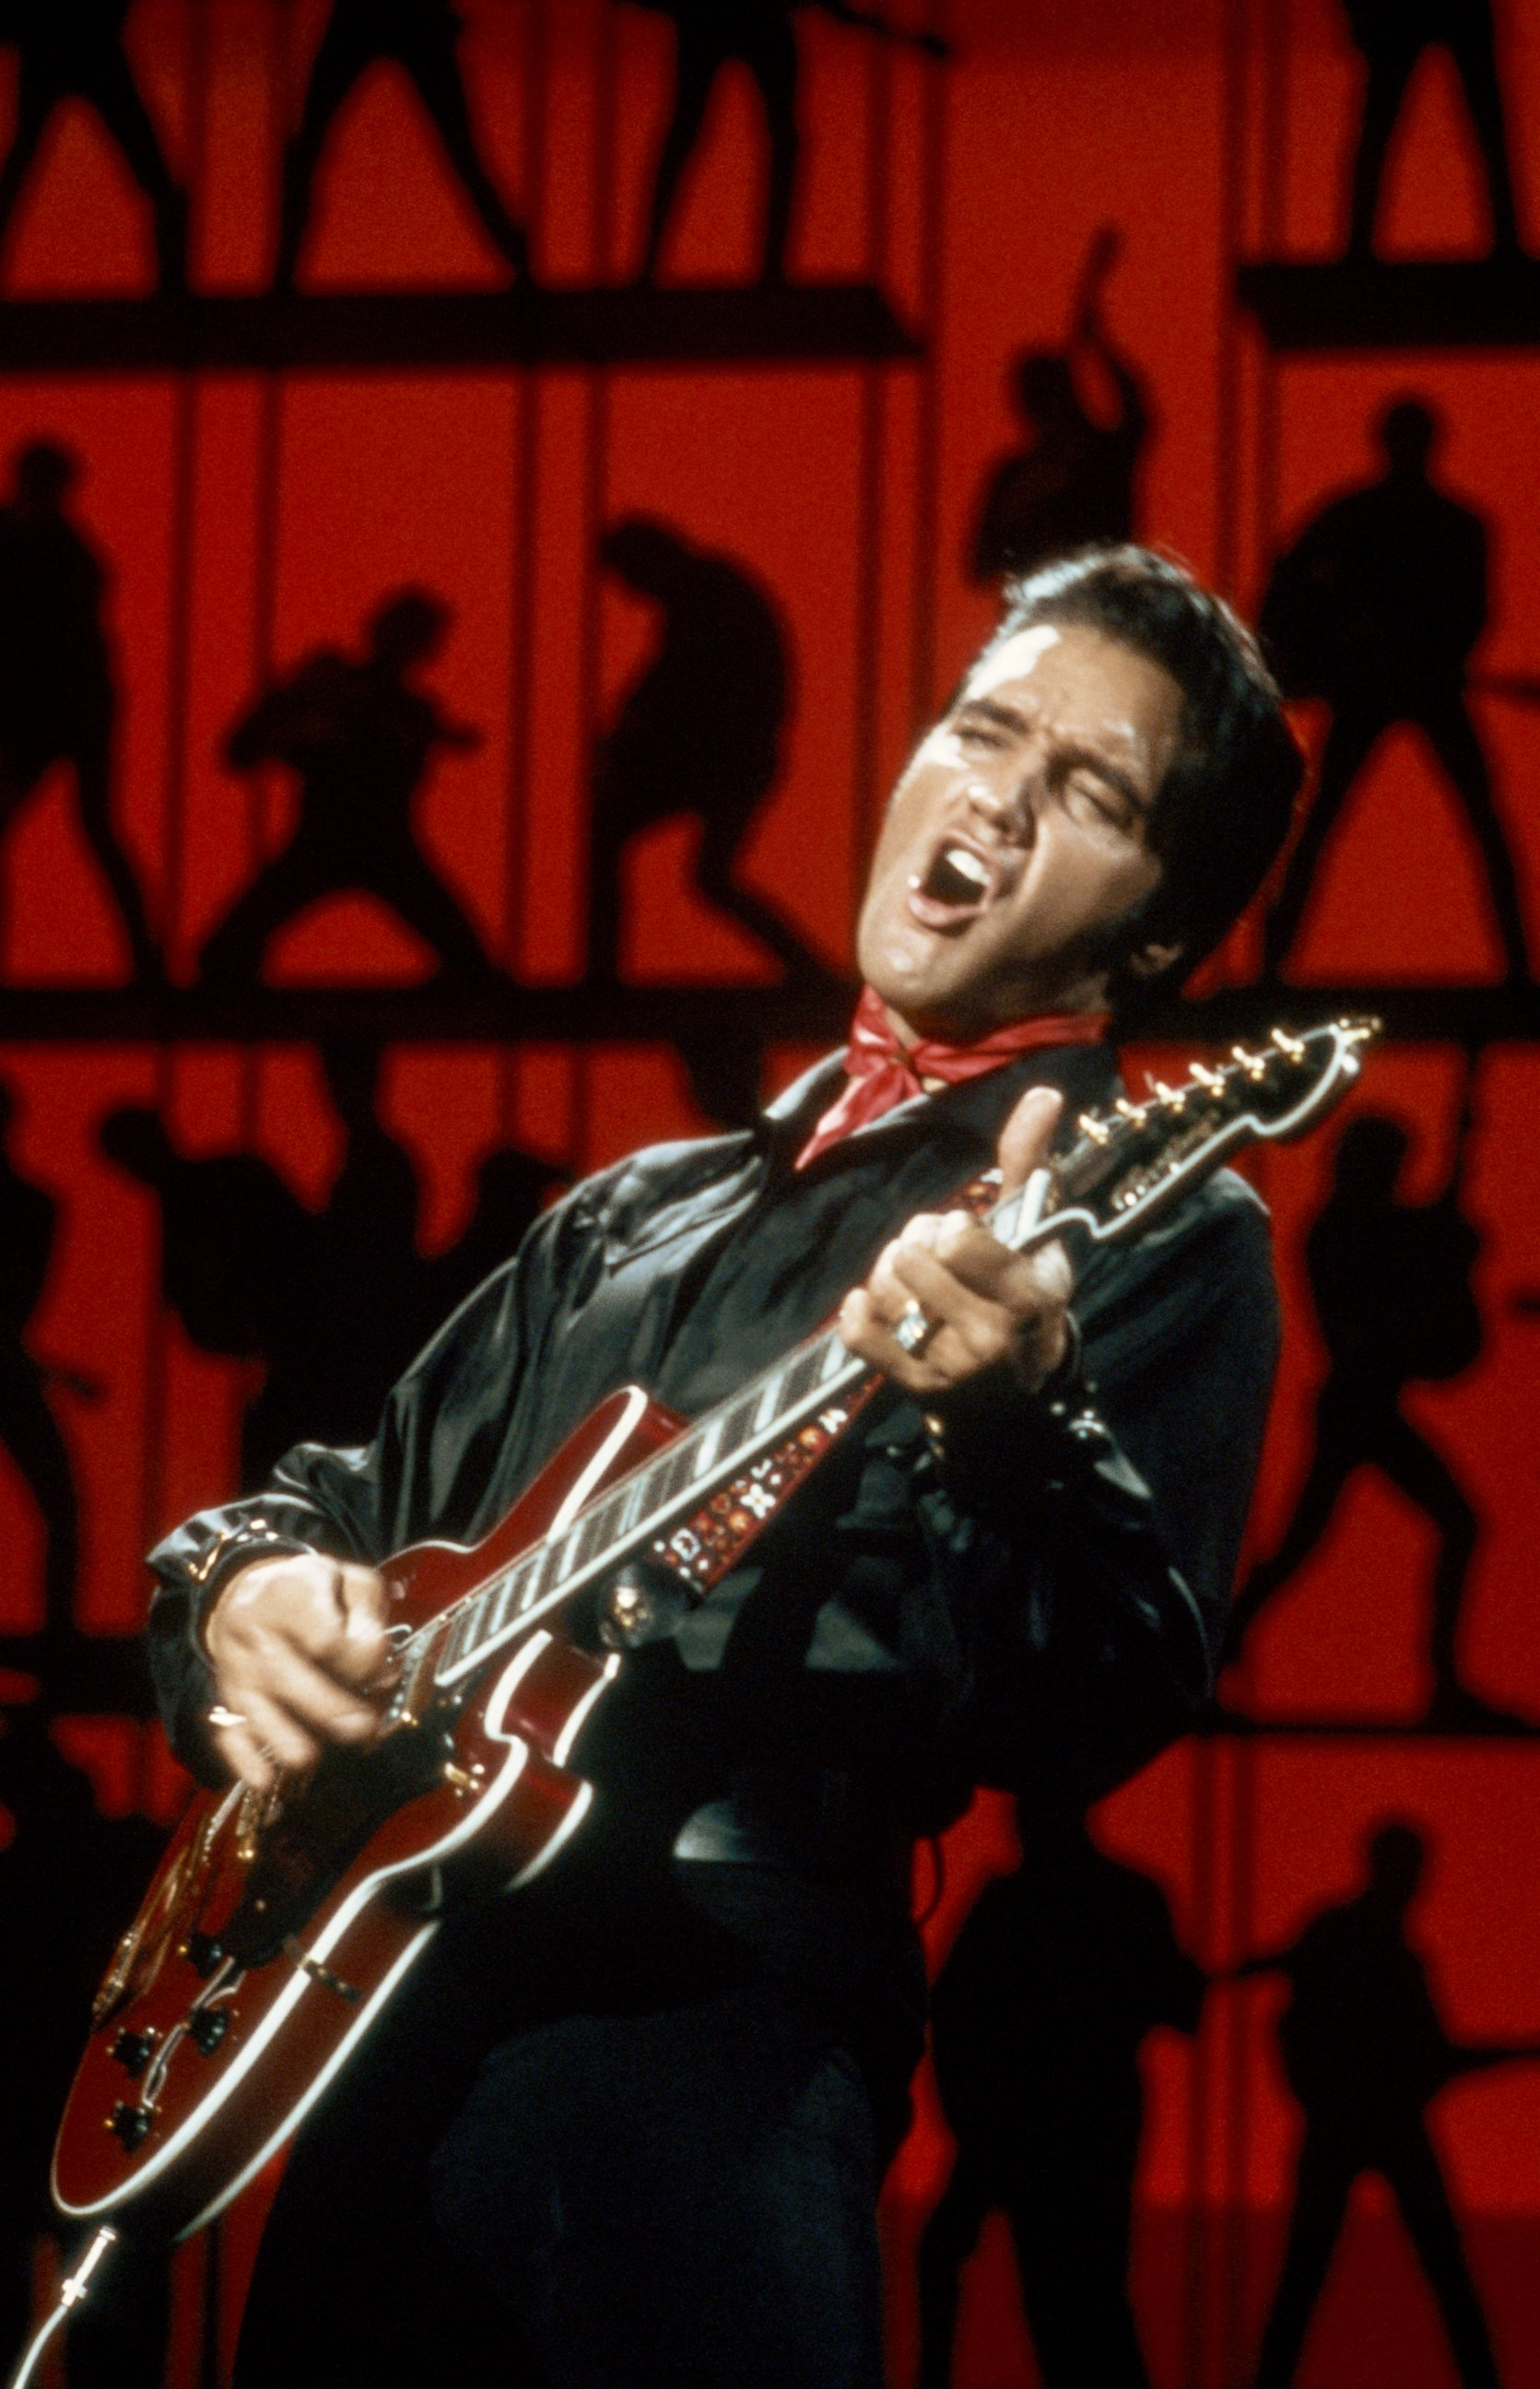 an analysis of melody and harmony in hound dog by elvis presley A movement of chords in a purposeful fashion, easiest to hear in bass first, chords can only harmonize a small number of melody notes, so in order to keep the harmony consonant with the melody, chords must continually change.